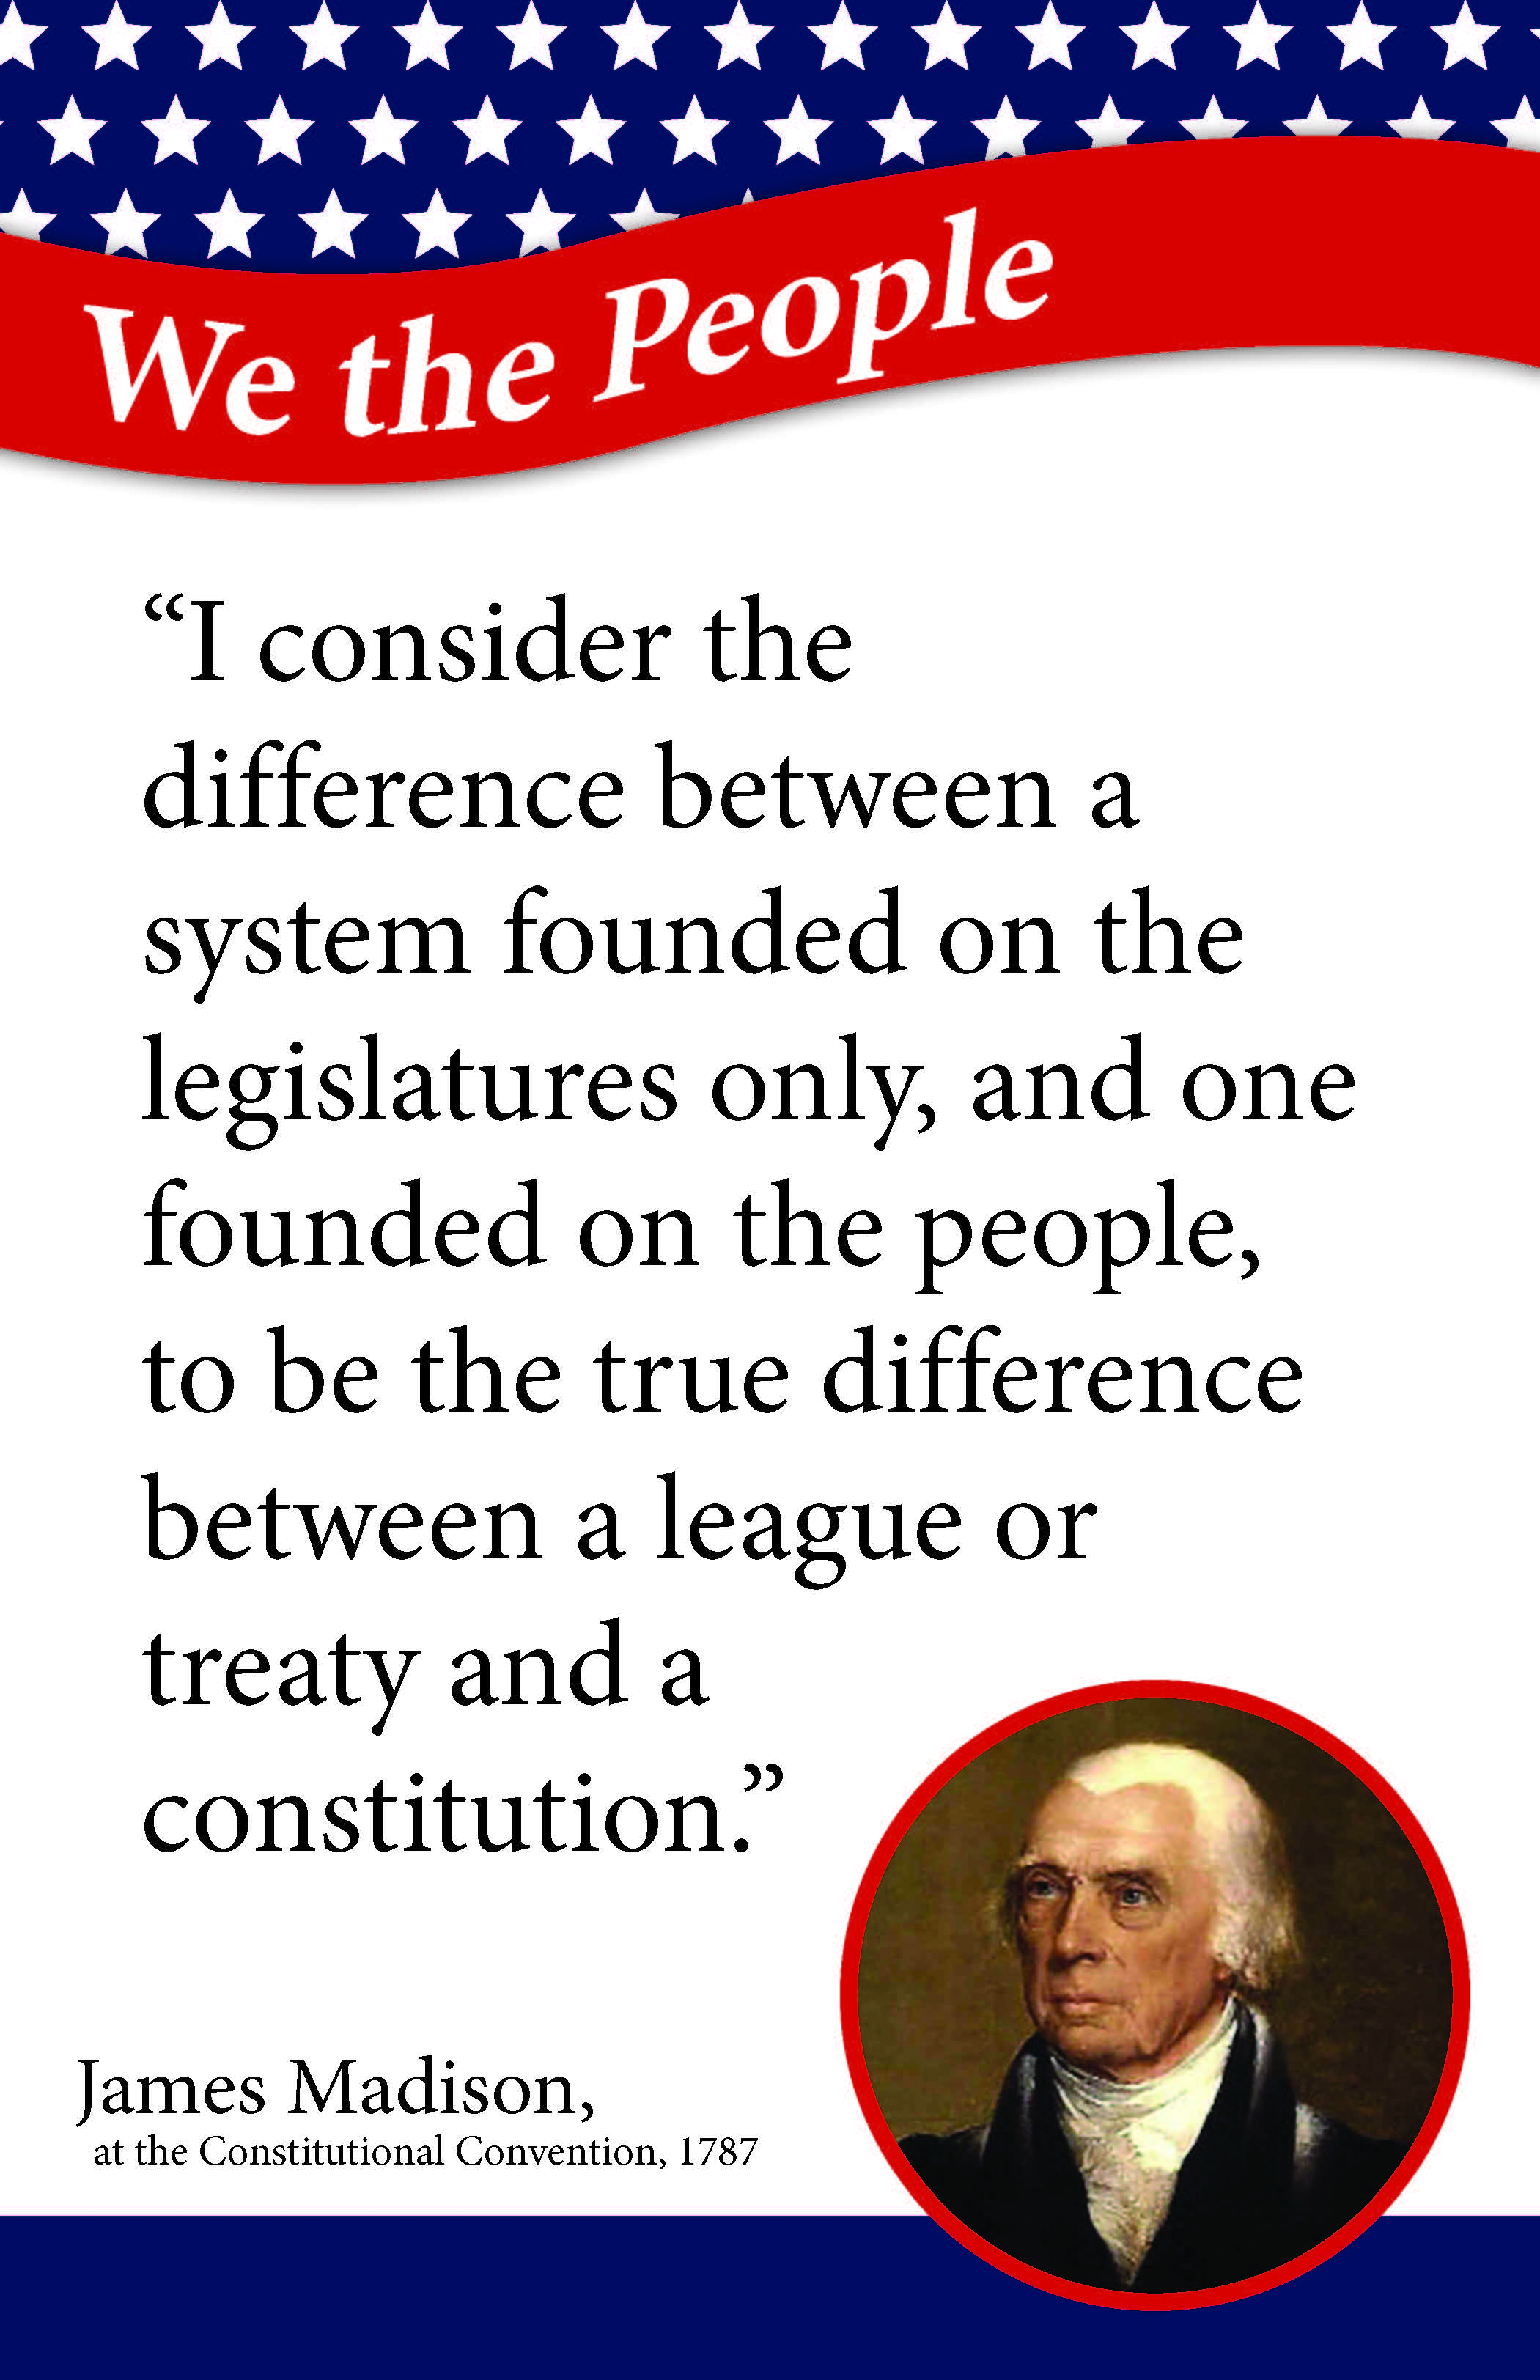 constitution_day_posters_11x17_Page_4